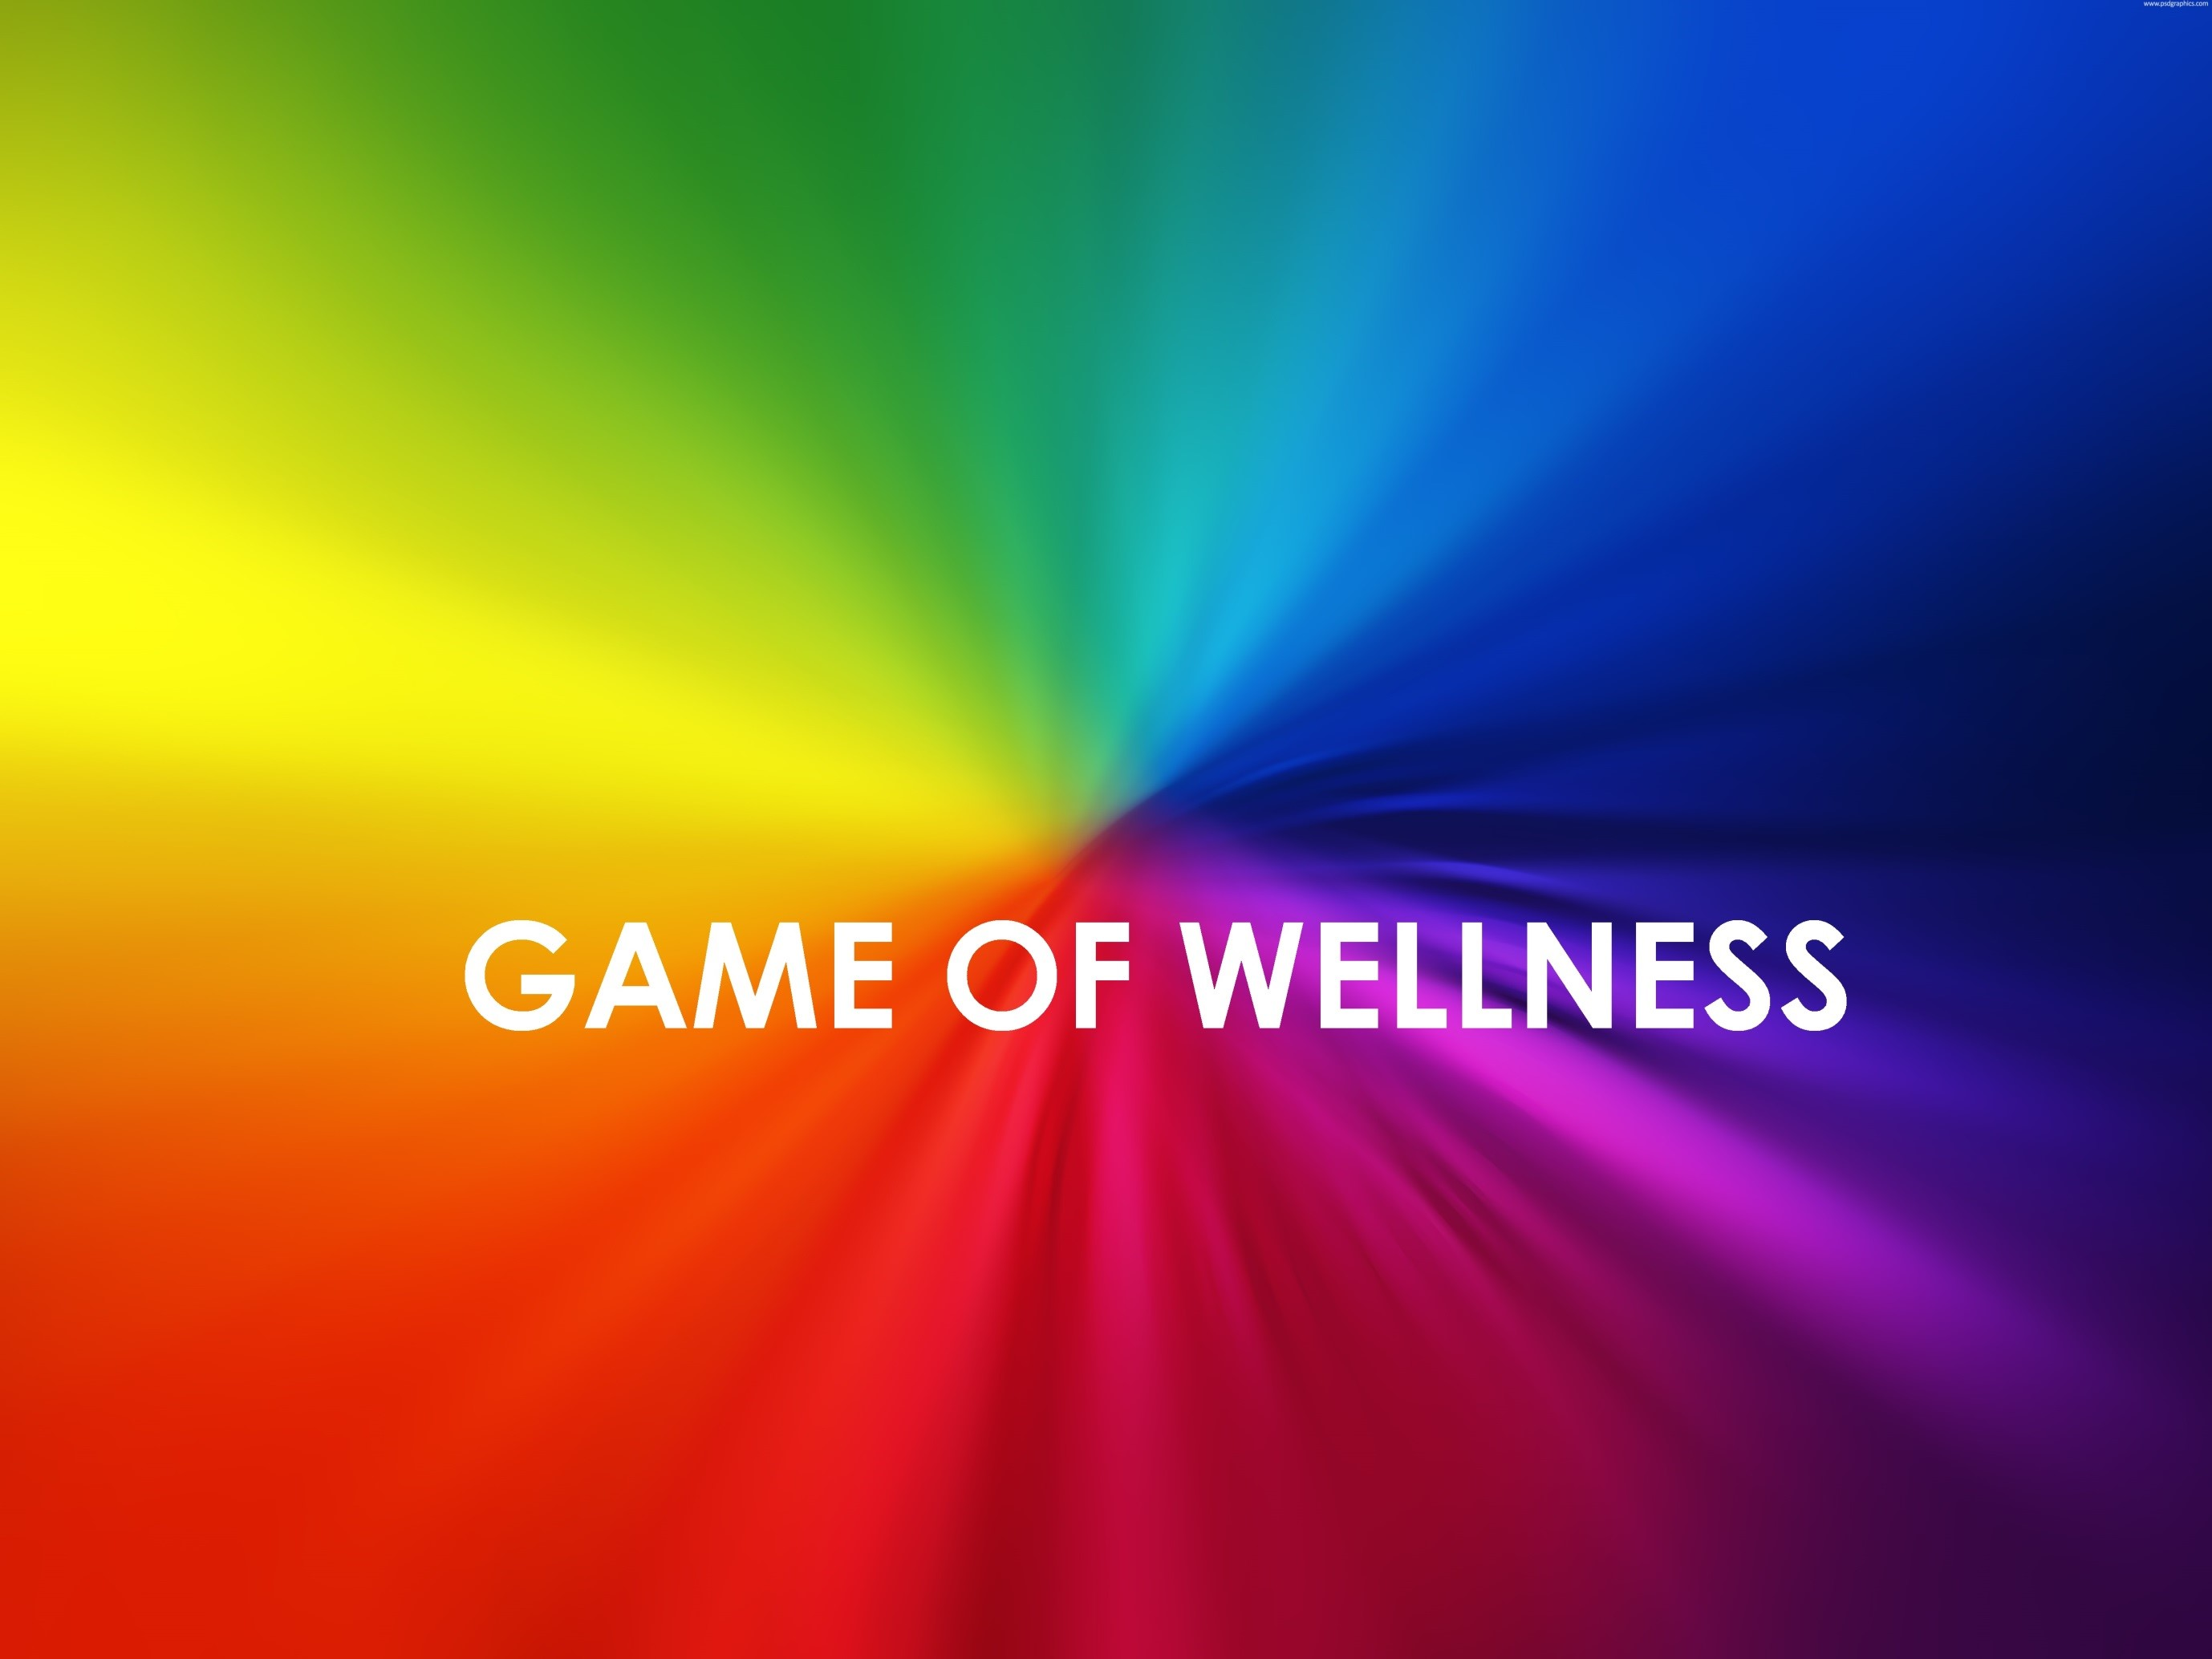 a3853ee72106 Do you want to experience more wellness in your work and your days  Play  more games and through your work change the world into a little better  place